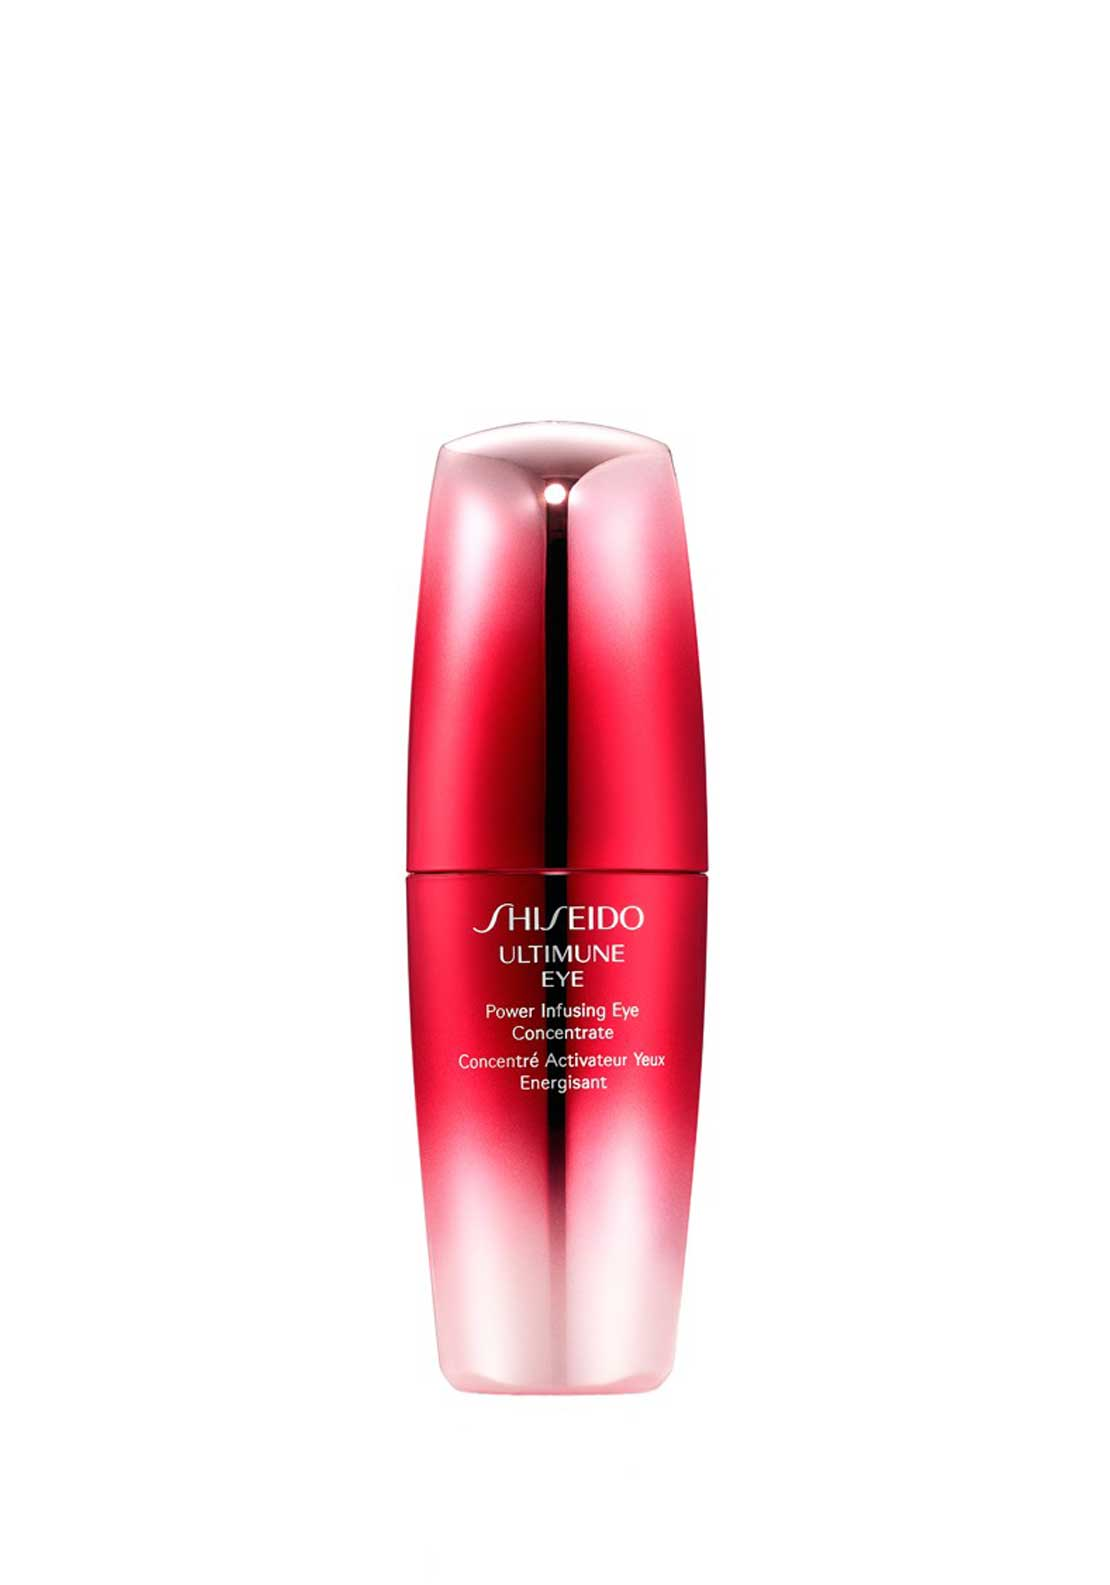 Shiseido Ultimune Eye, 15ml